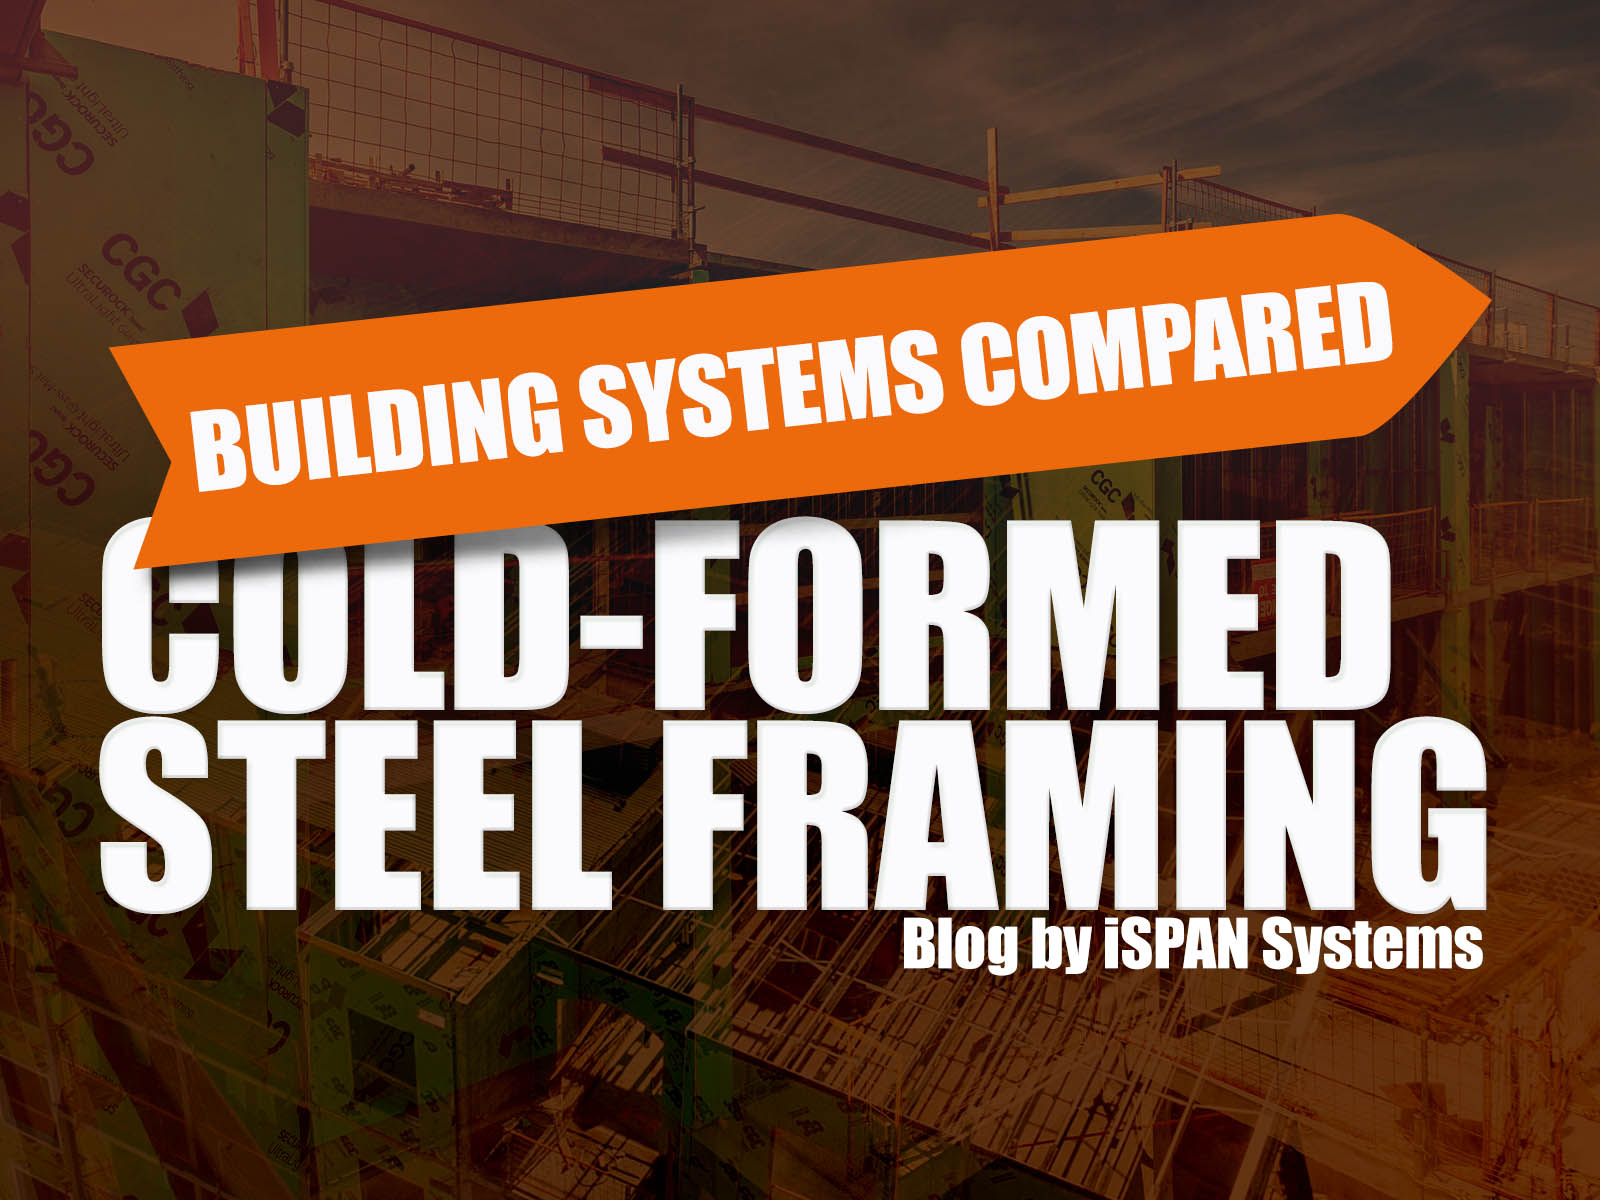 Cold Formed Steel Framing Building Systems Compared